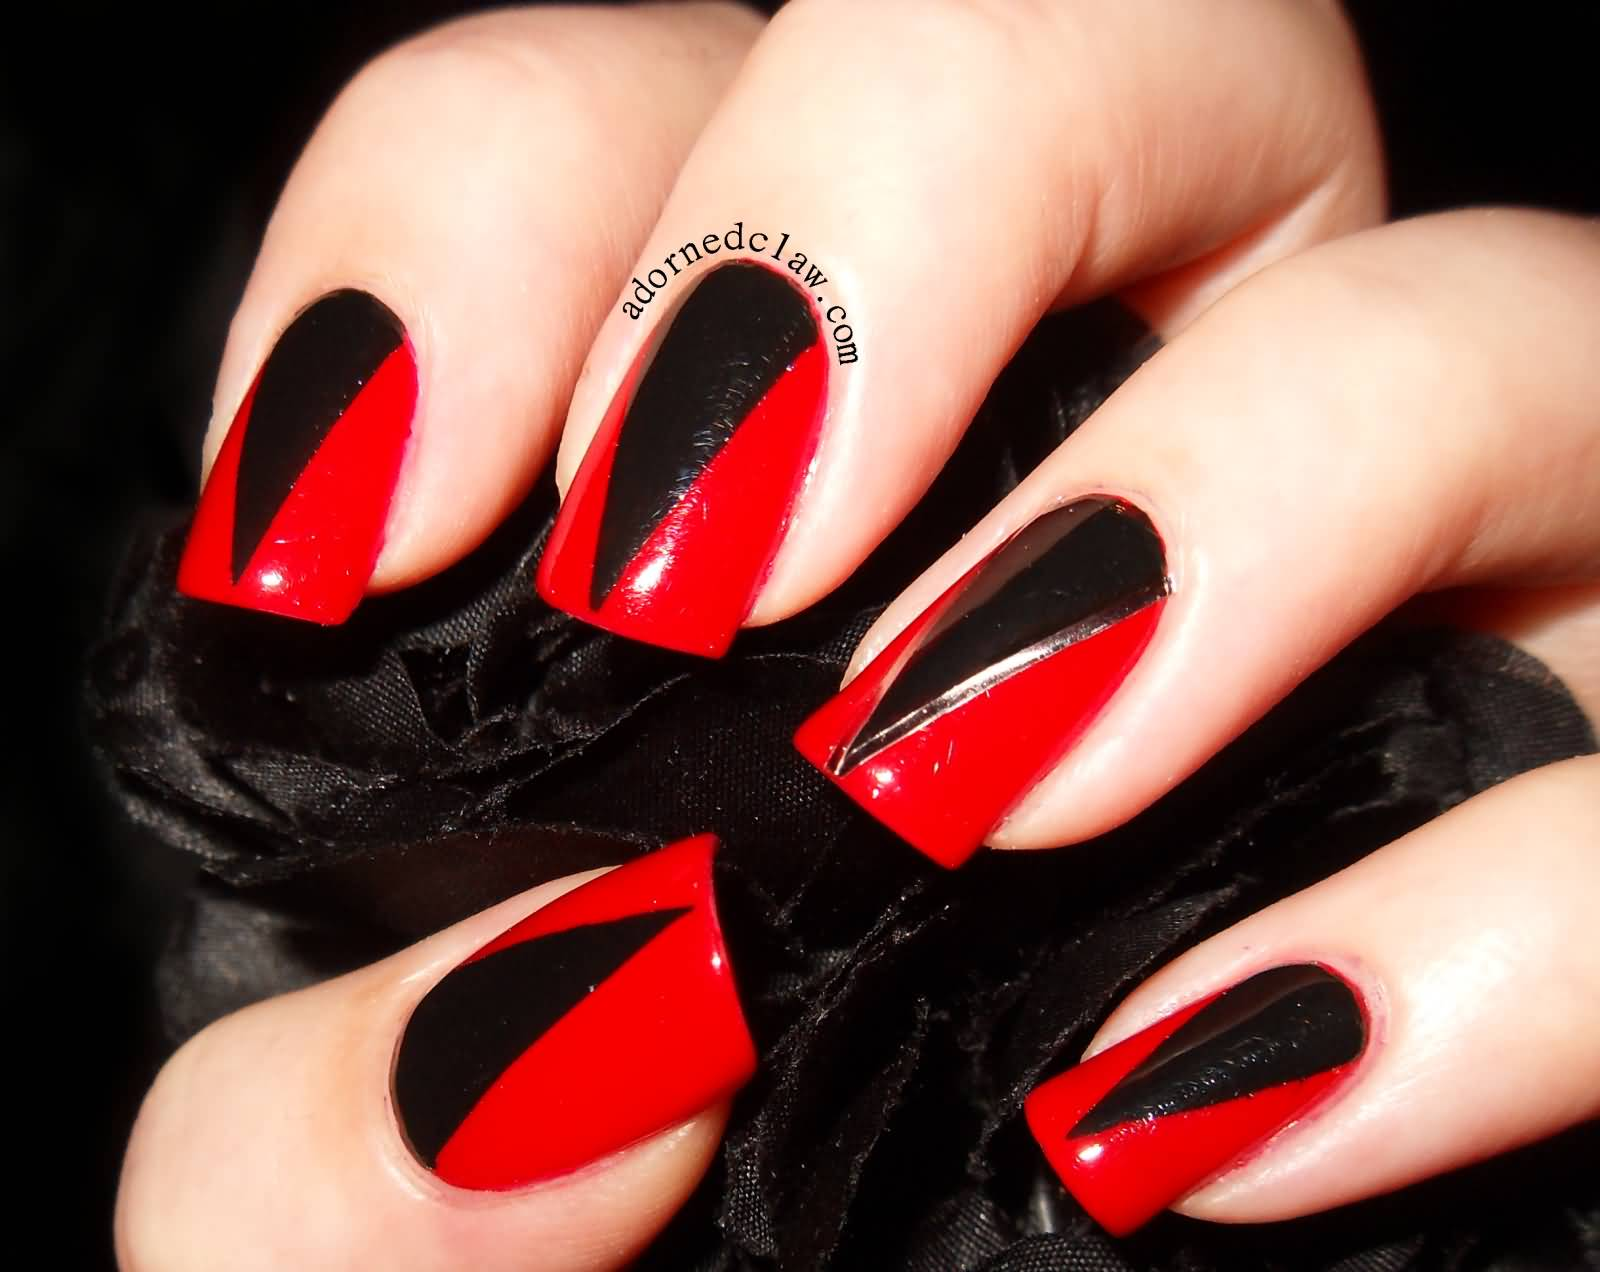 Awesome Red And Black Nails With Sharp V Design On Nail